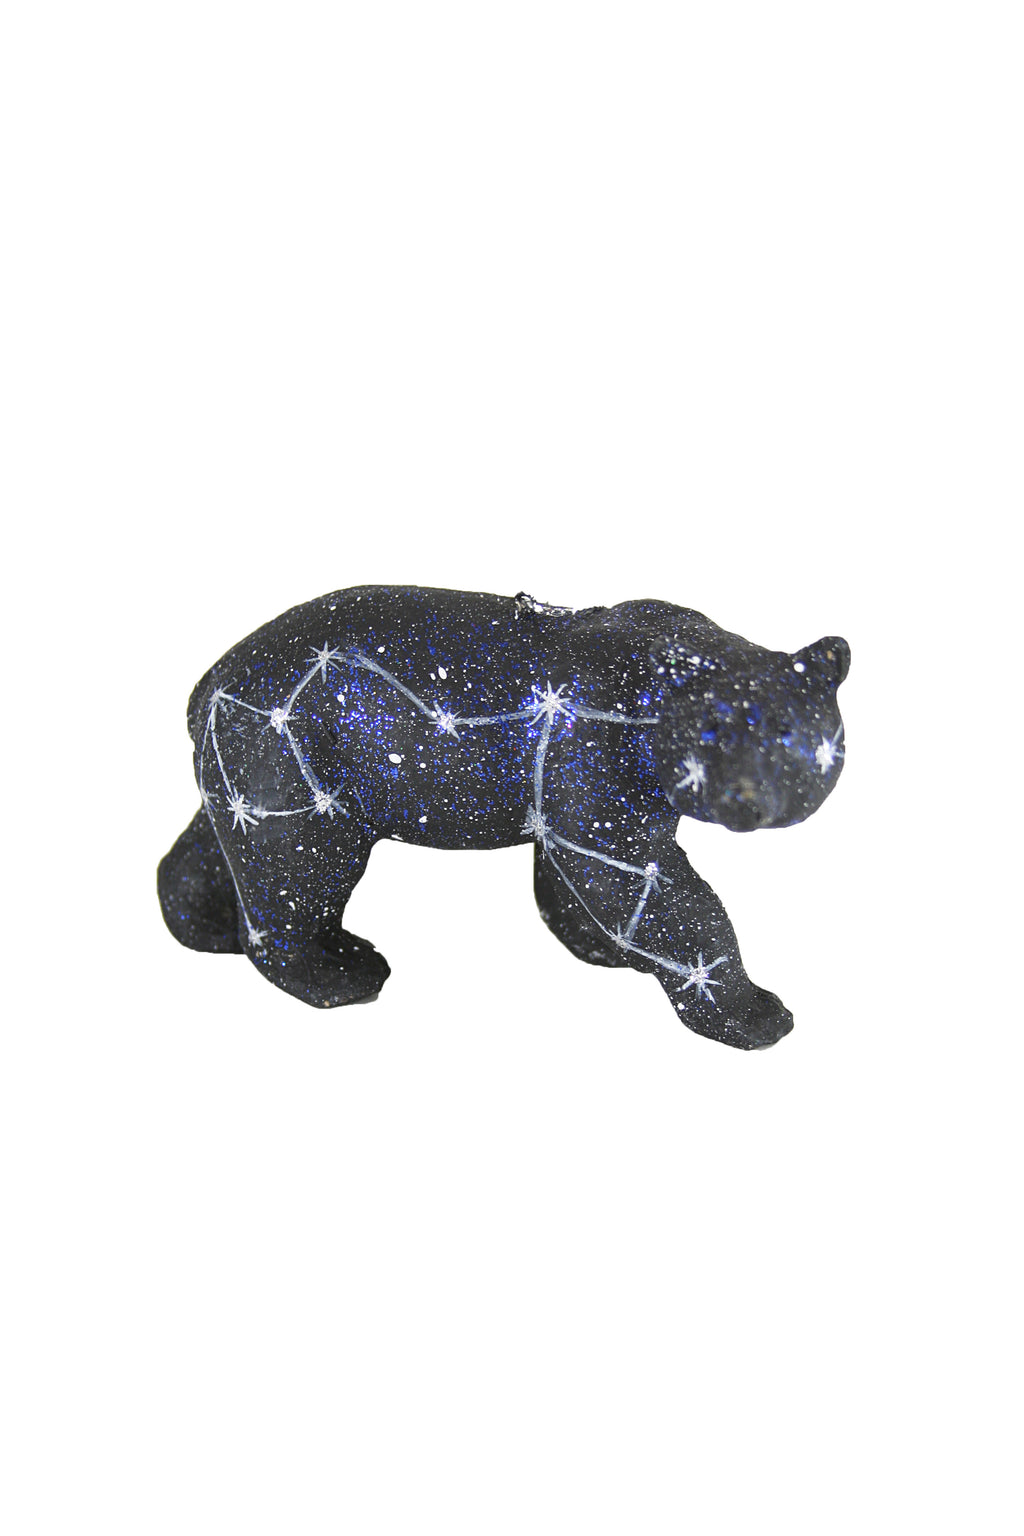 Night Sky Bear Ornament